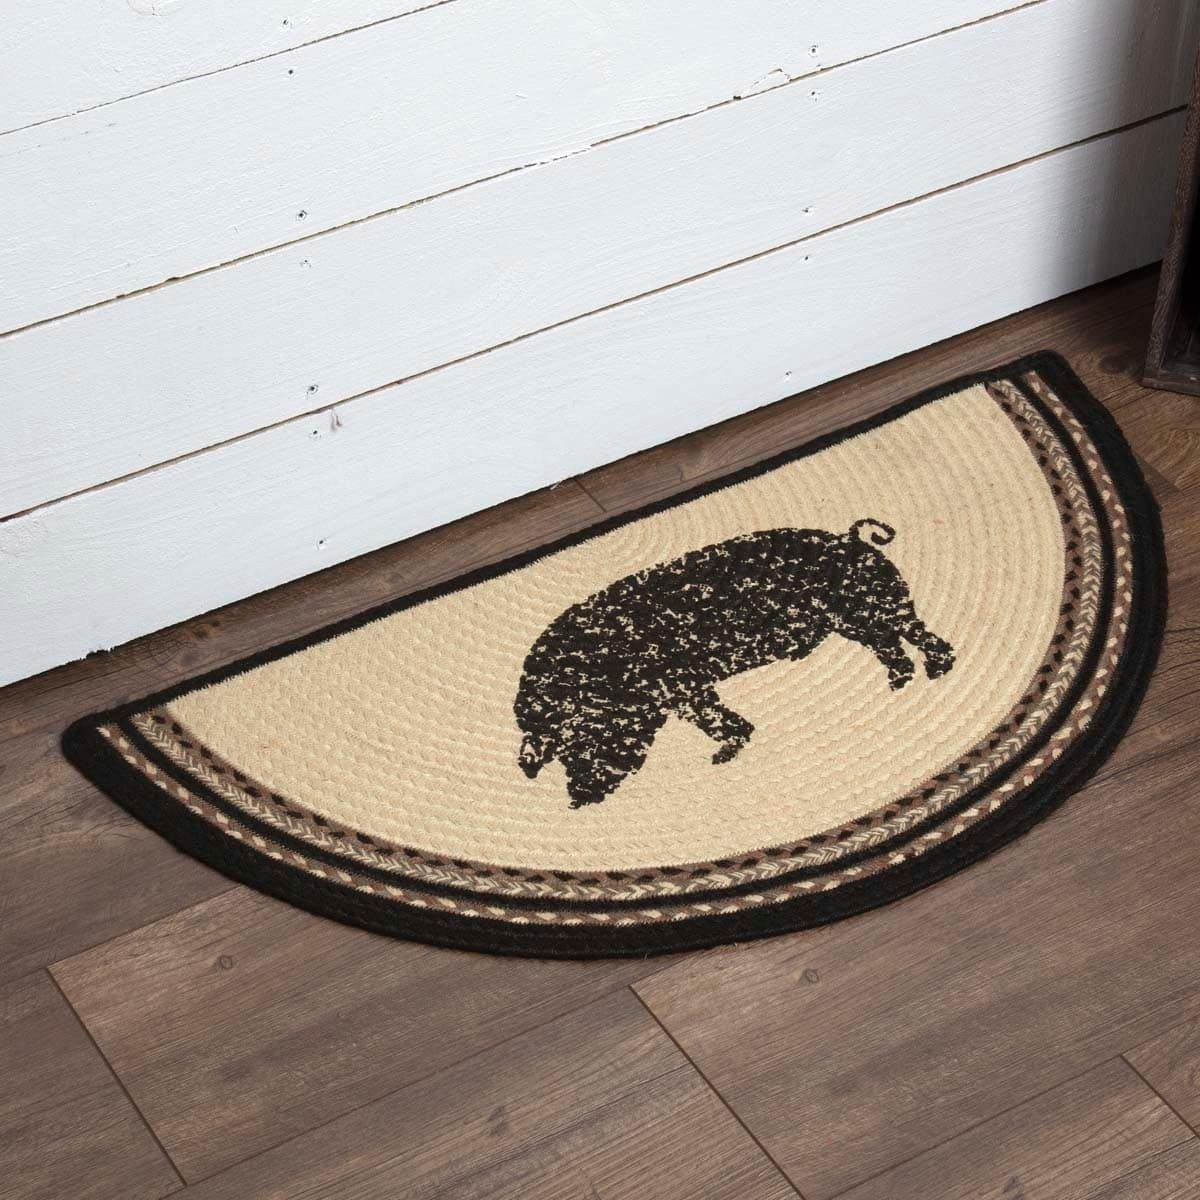 Online Shopping Bedding Furniture Electronics Jewelry Clothing More In 2020 Circle Rug Jute Rug Braided Rugs